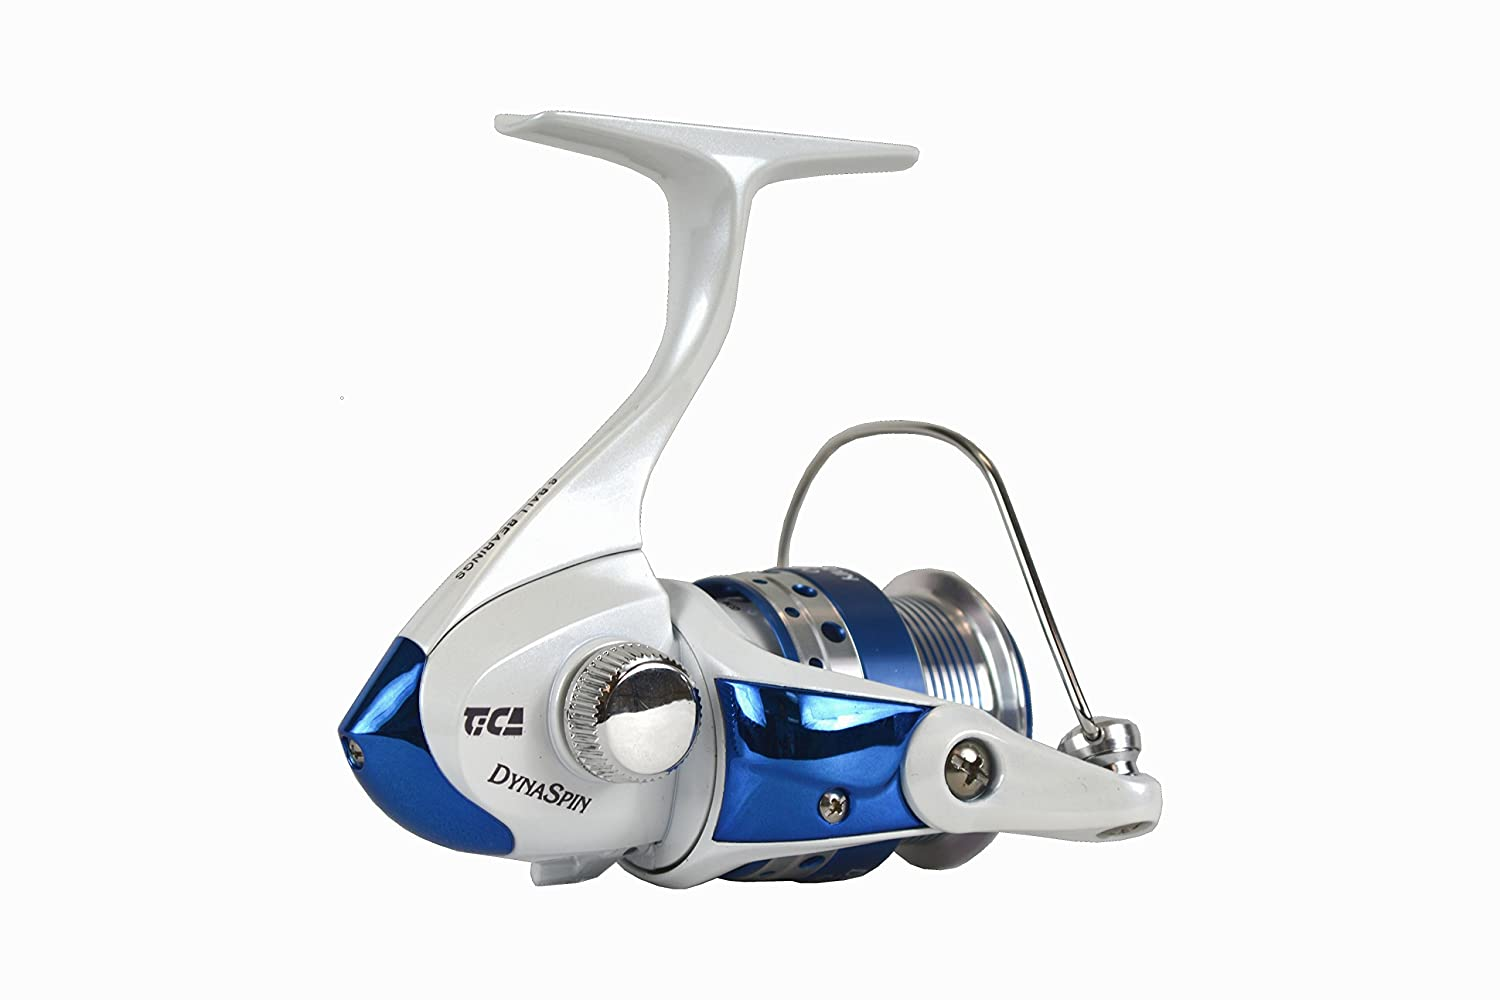 TICA GH Series DynaSpin Series Spinning Reel 6 Ball Bearings